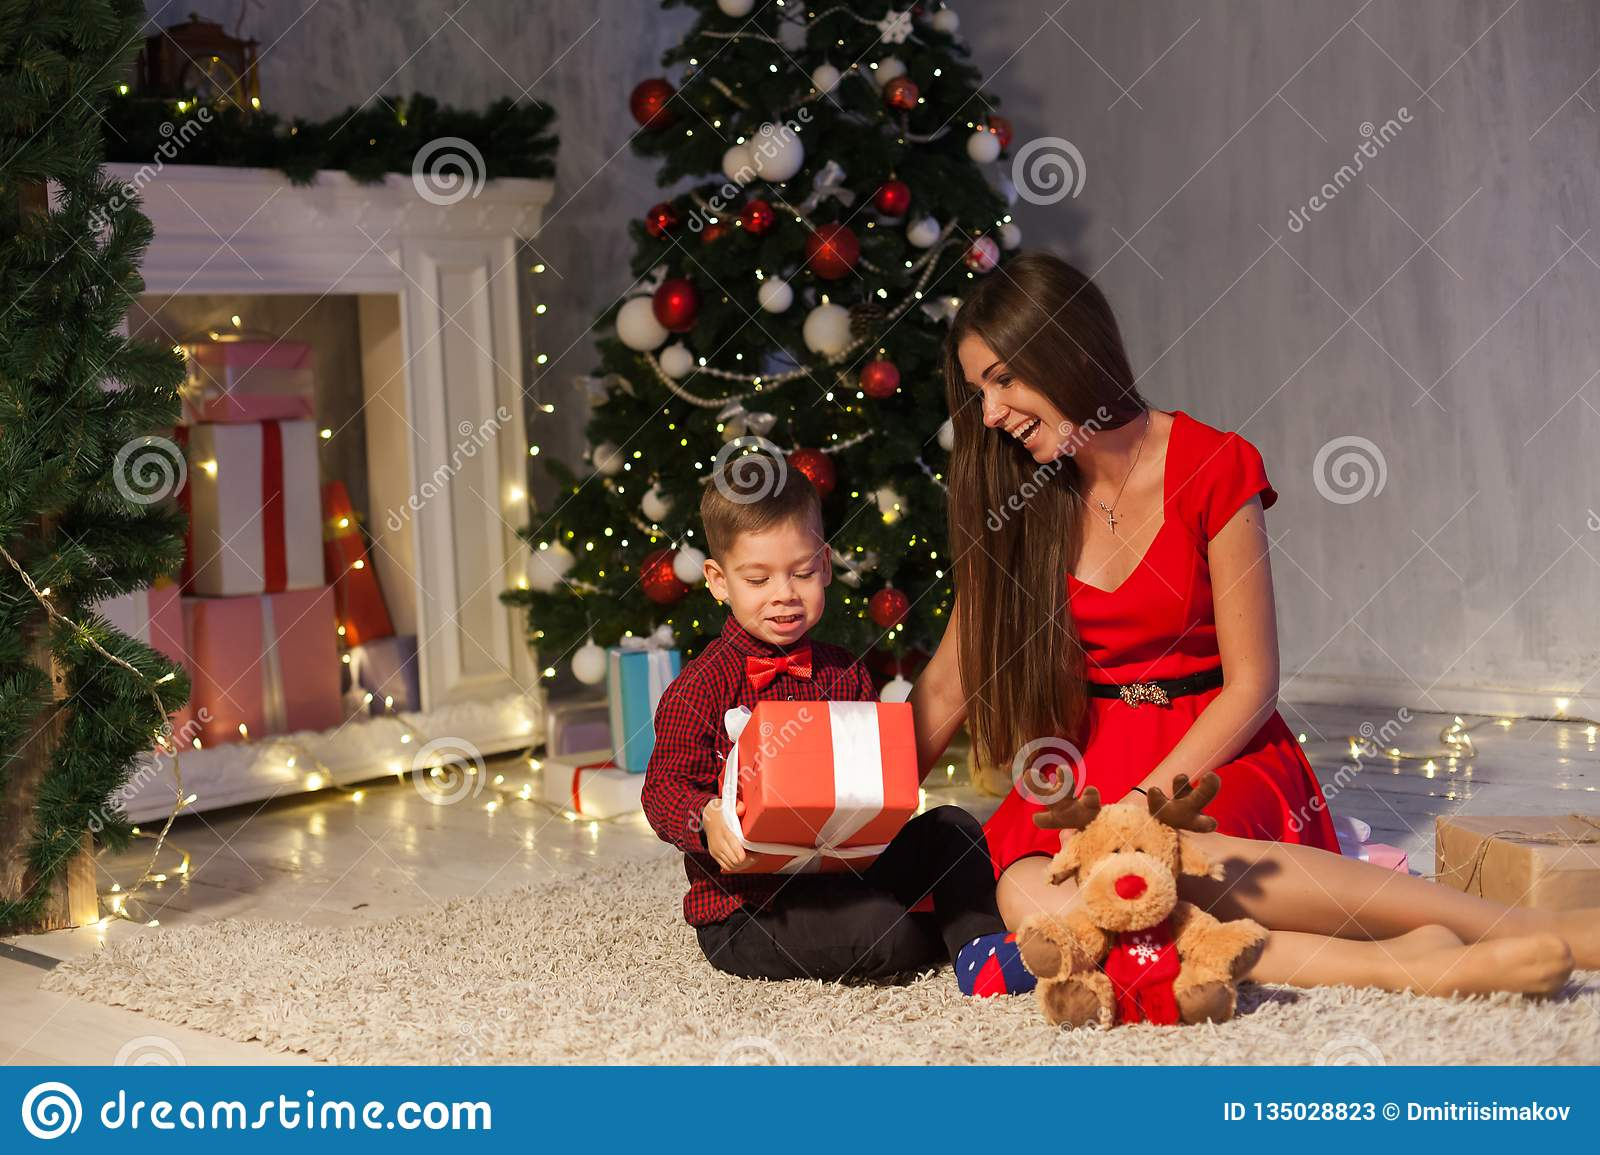 Christmas Gifts For Mom From Son.Mom With Son Decorate Christmas Tree New Year Gifts Garland